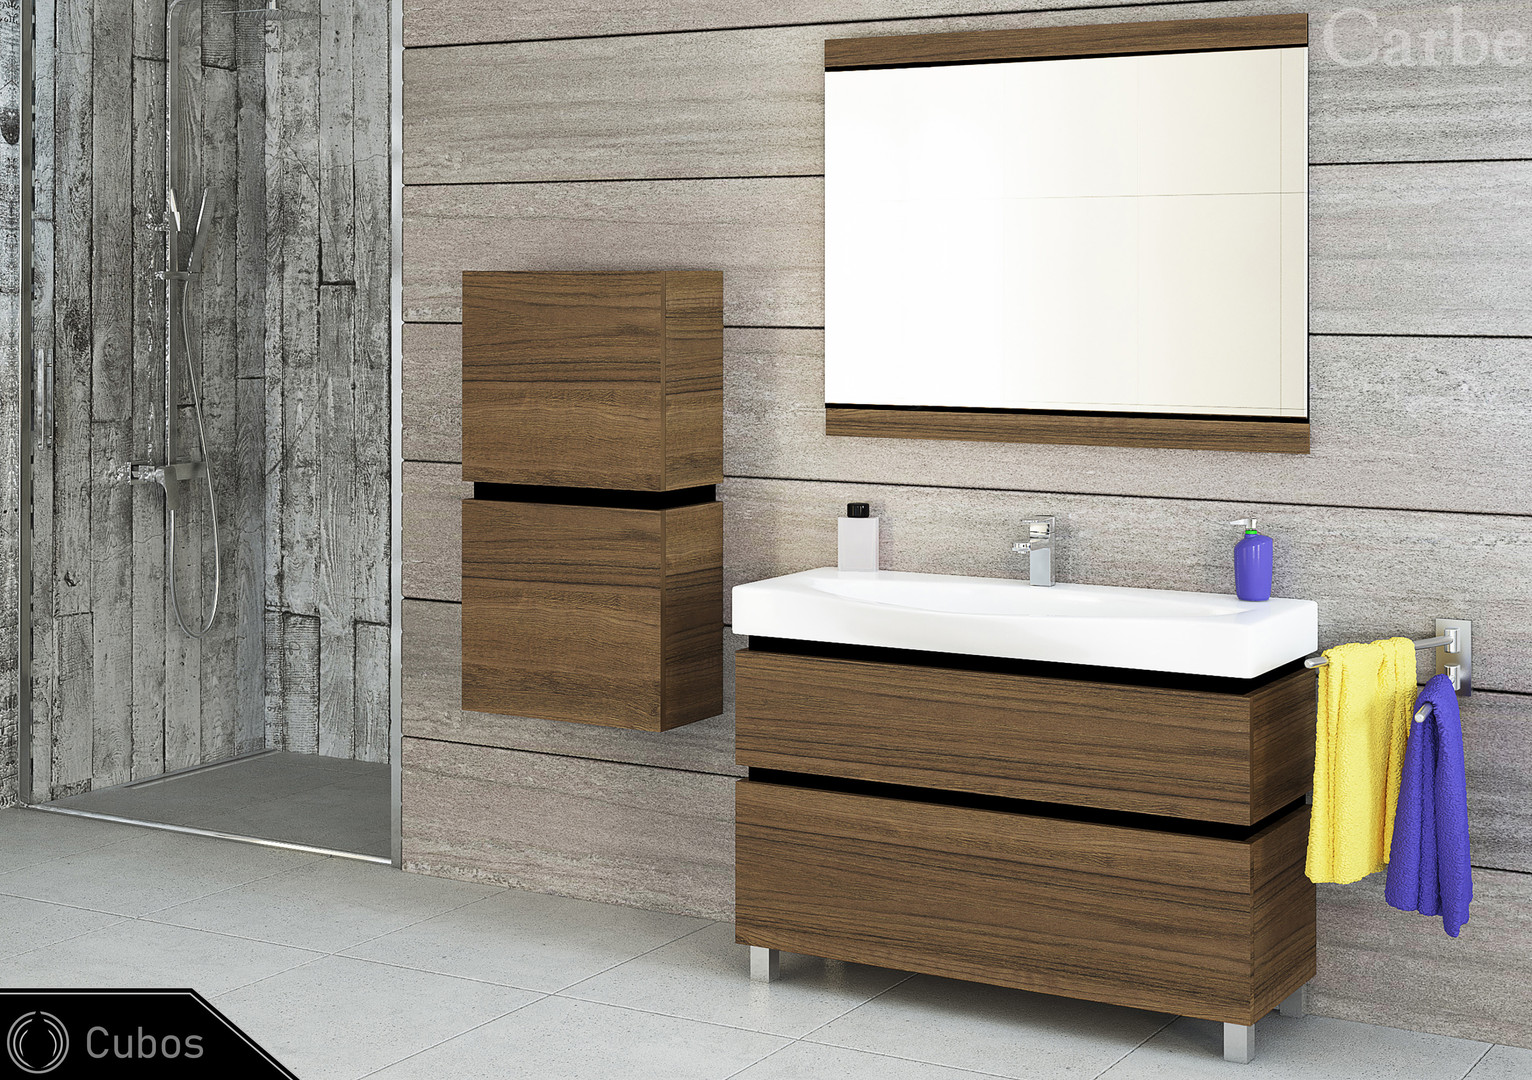 Cubos - Oak Antique Brown, Ceramic Washbasin, Soft Closing